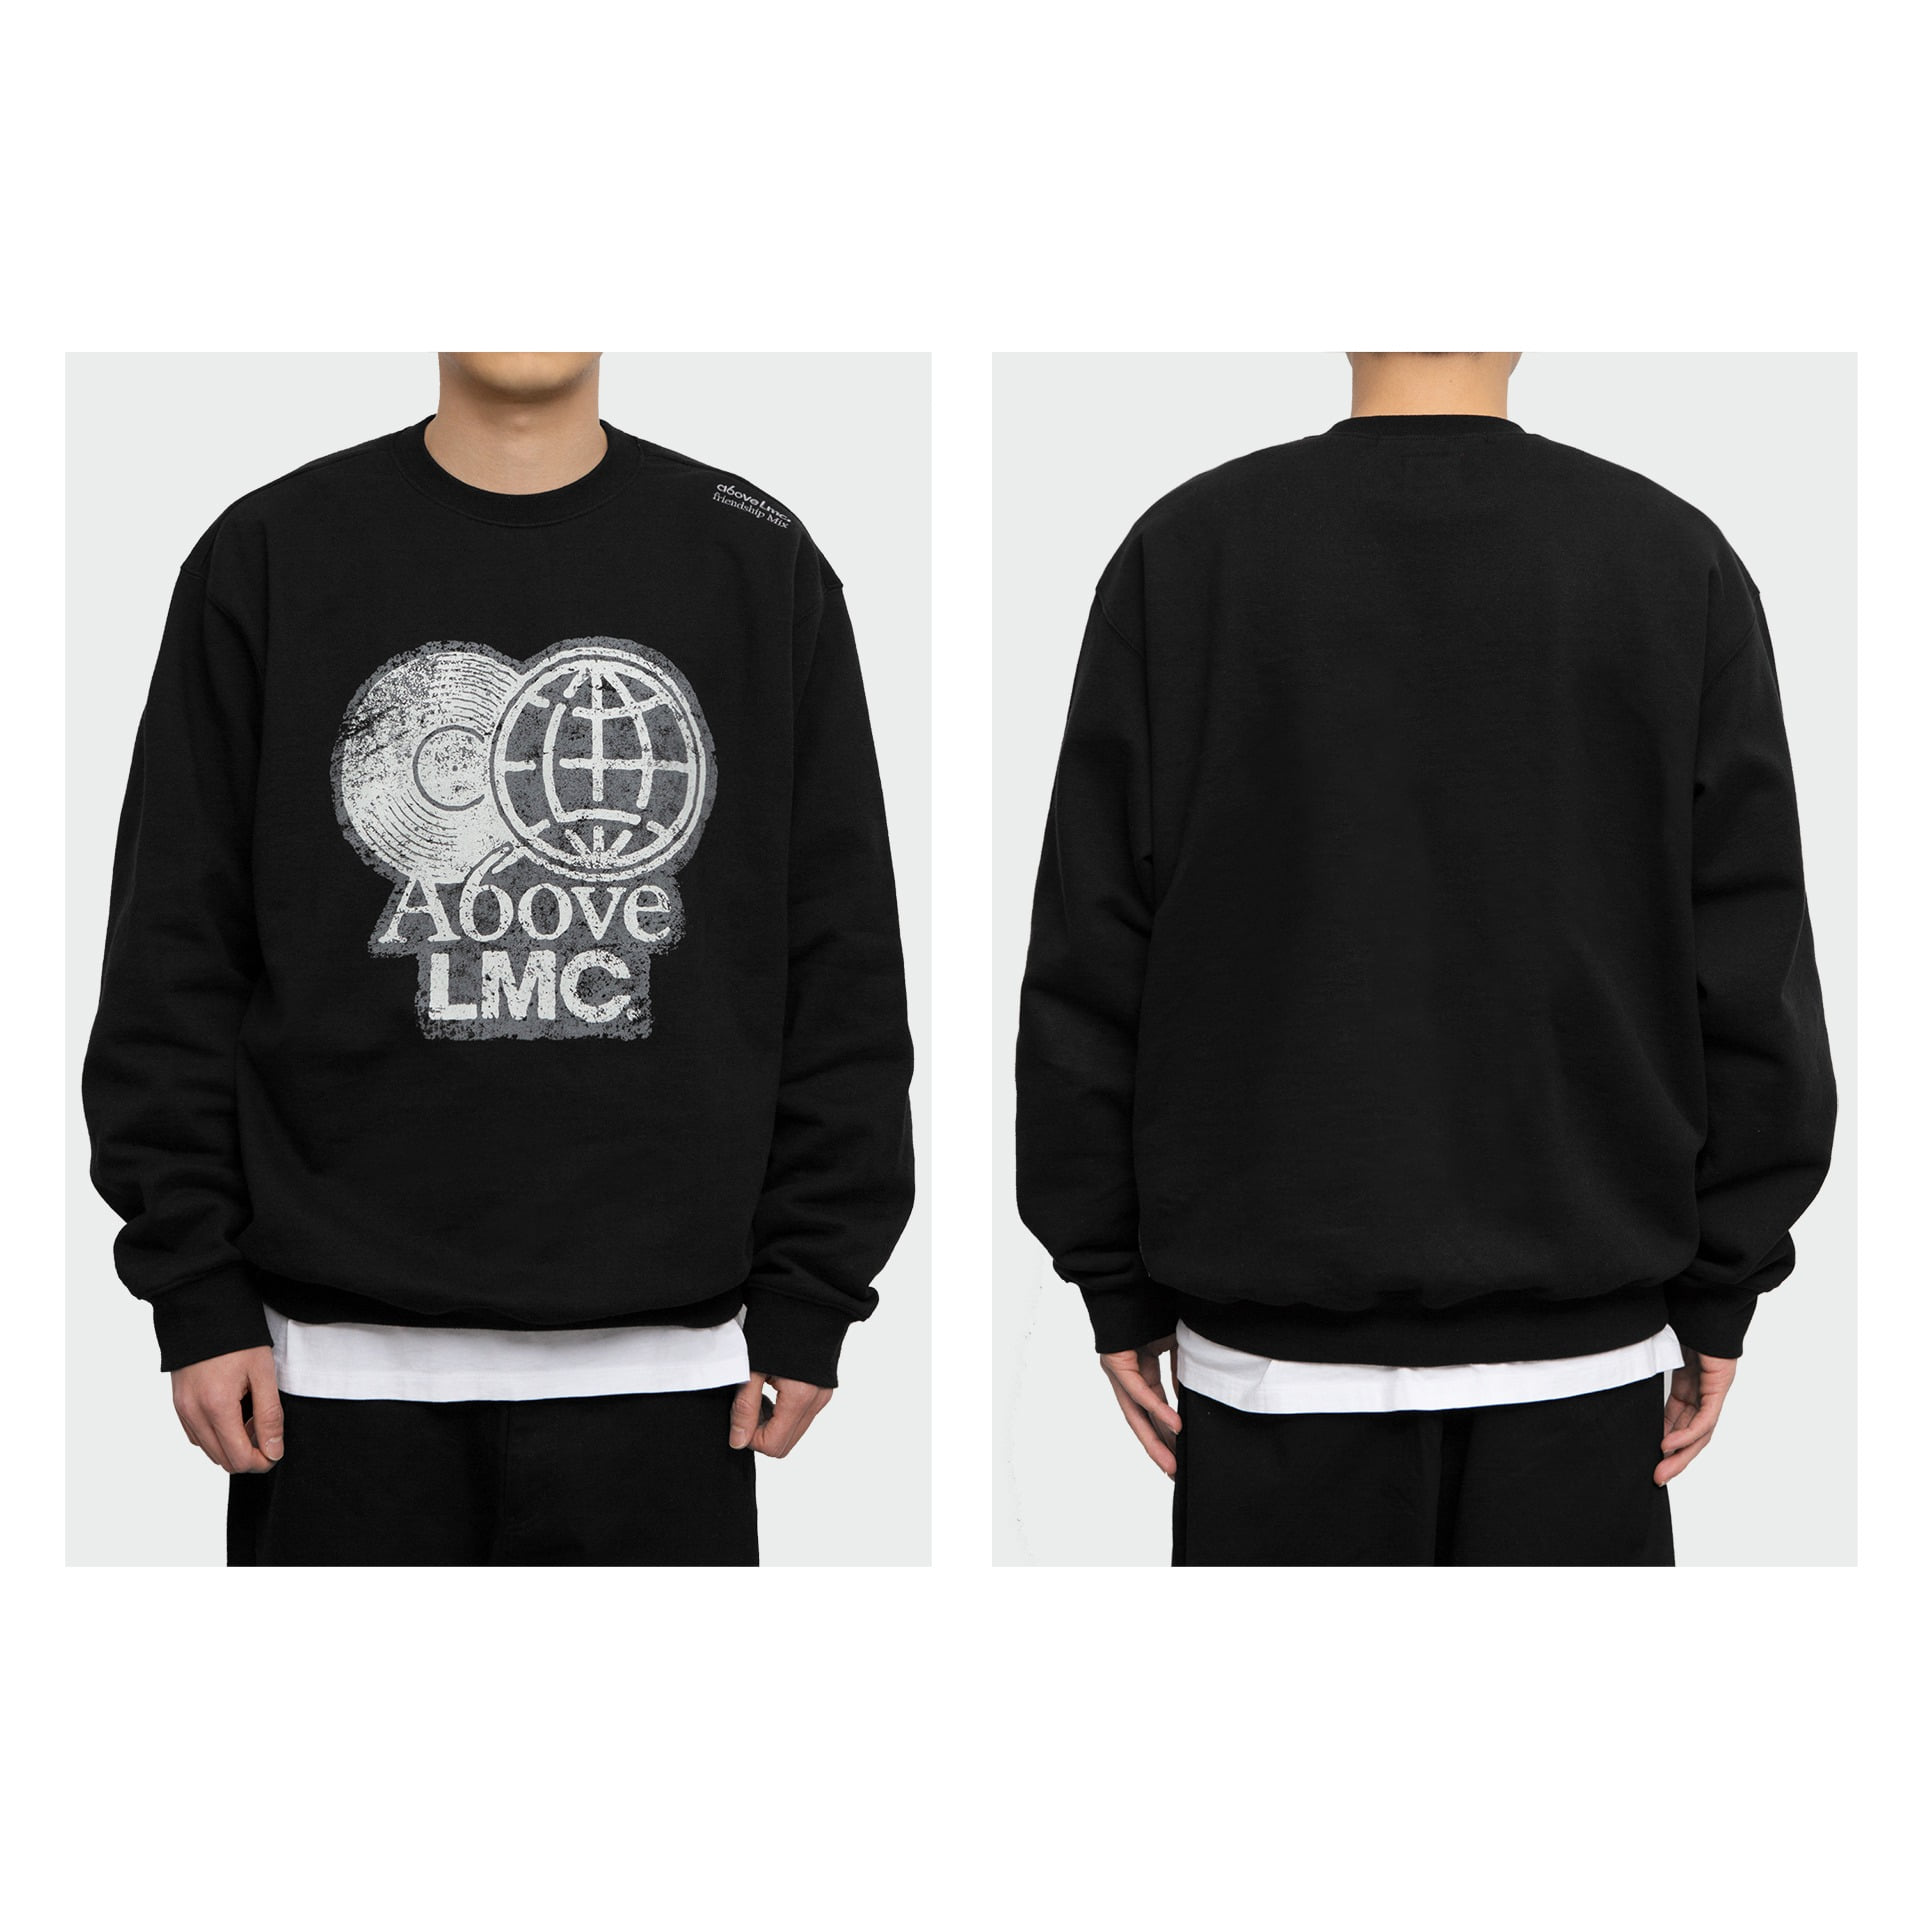 layer-LMC X A6OVE FRIENDSHIP MIX SWEATSHIRT black♡韓國男裝上衣